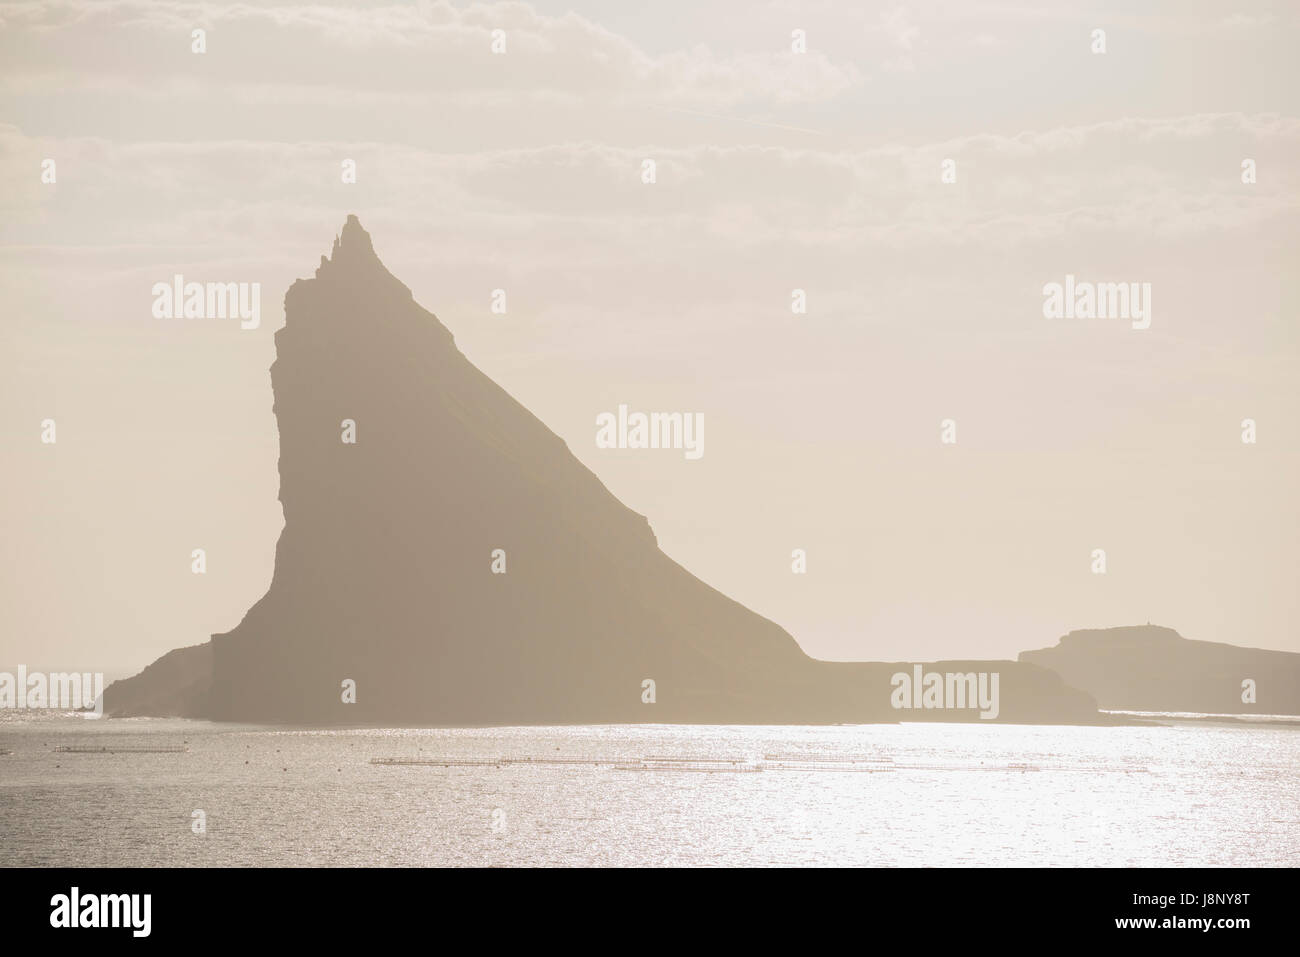 Silhouette of mountain by sea Stock Photo